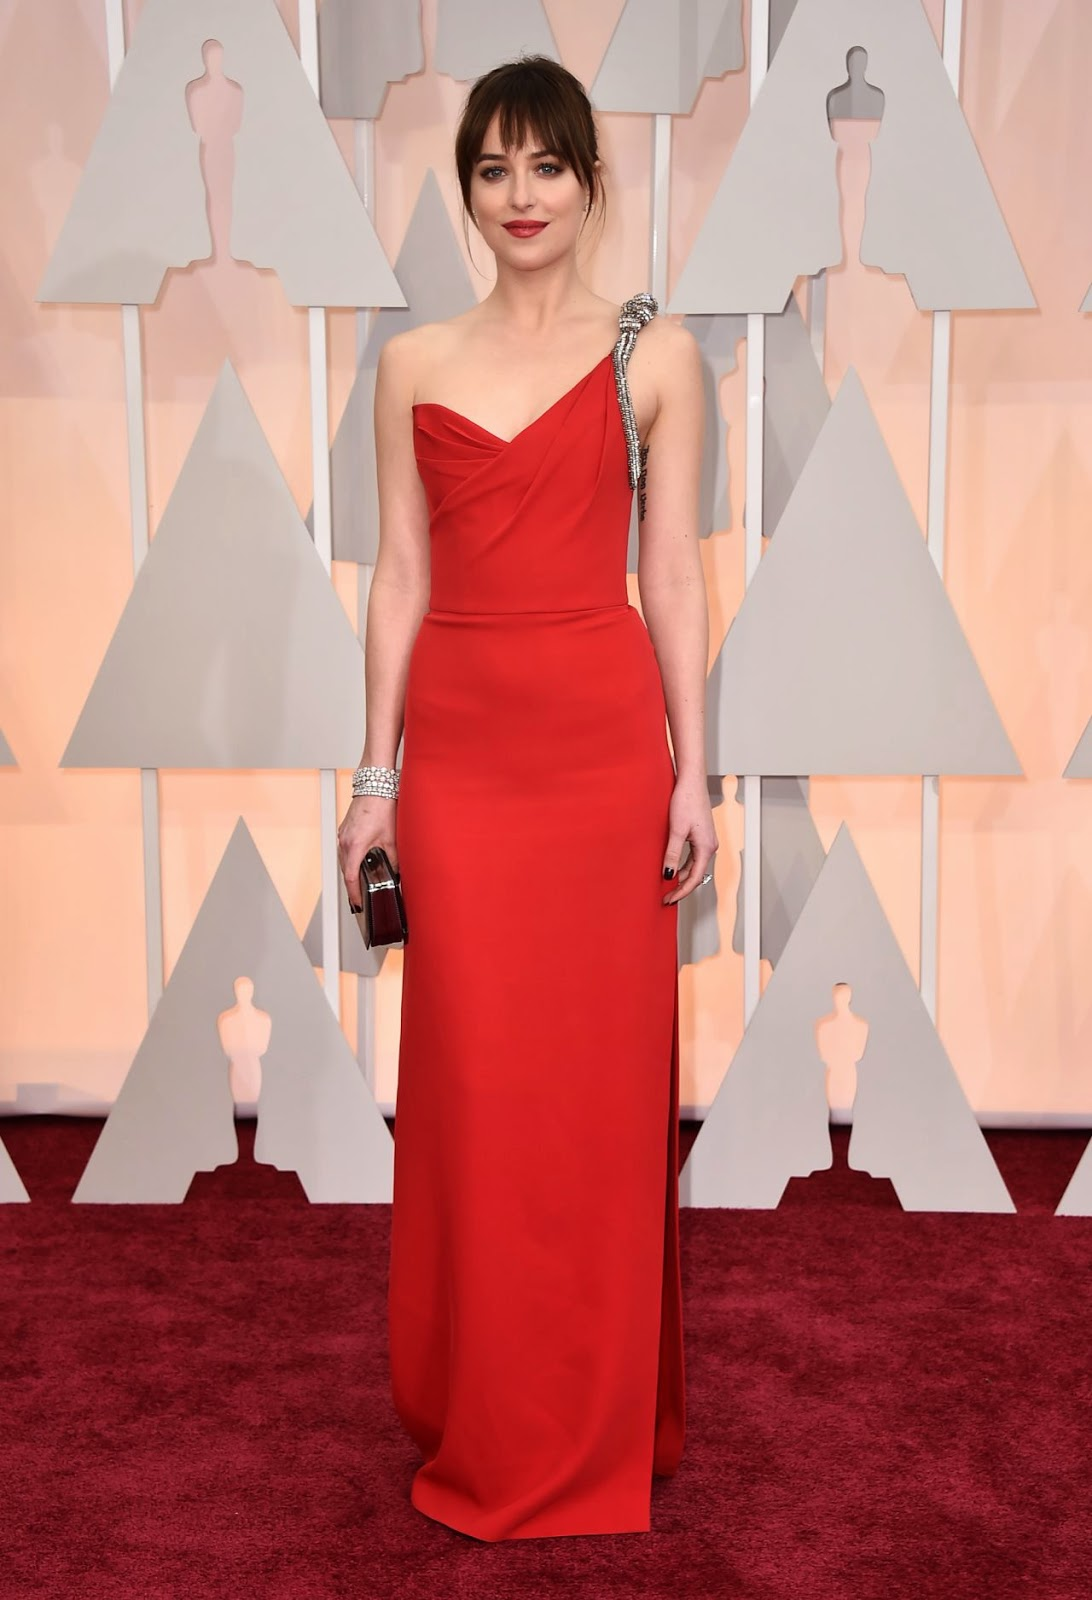 Dakota Johnson sizzles in a slinky red dress at the 2015 Oscars in Hollywood